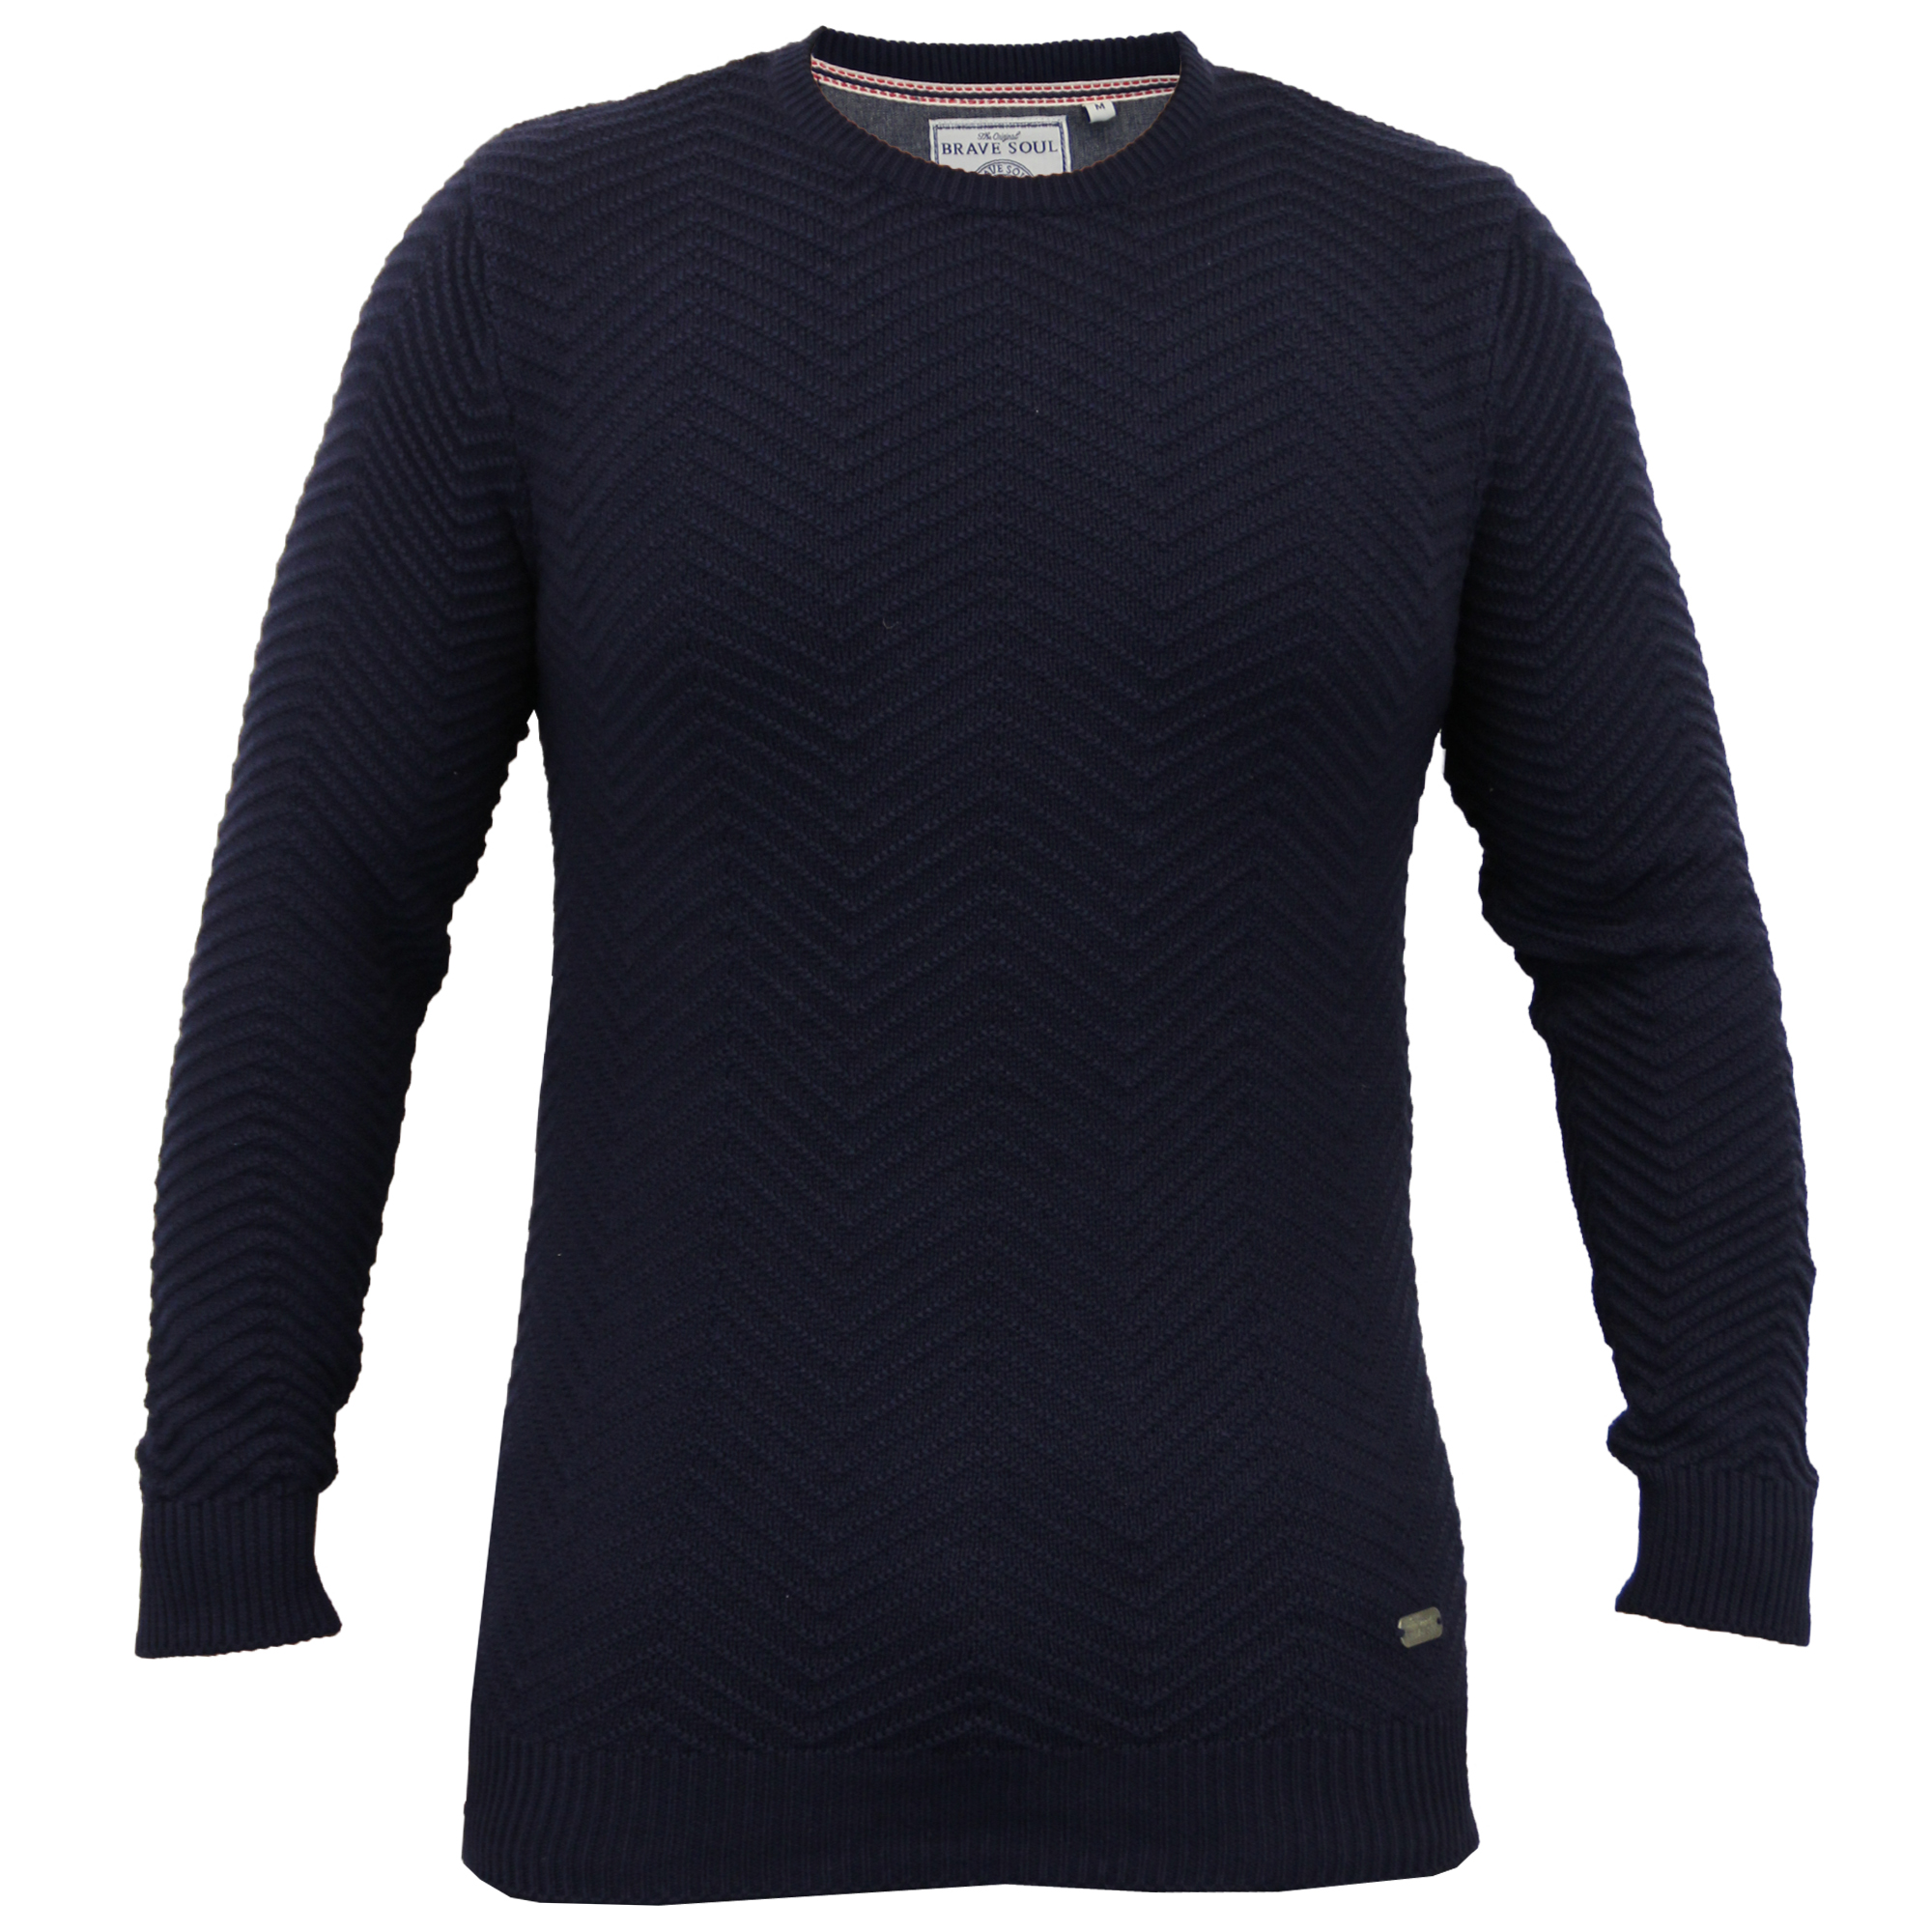 Mens-Knitted-Sweater-Pullover-Jumpers-By-Brave-Soul thumbnail 5